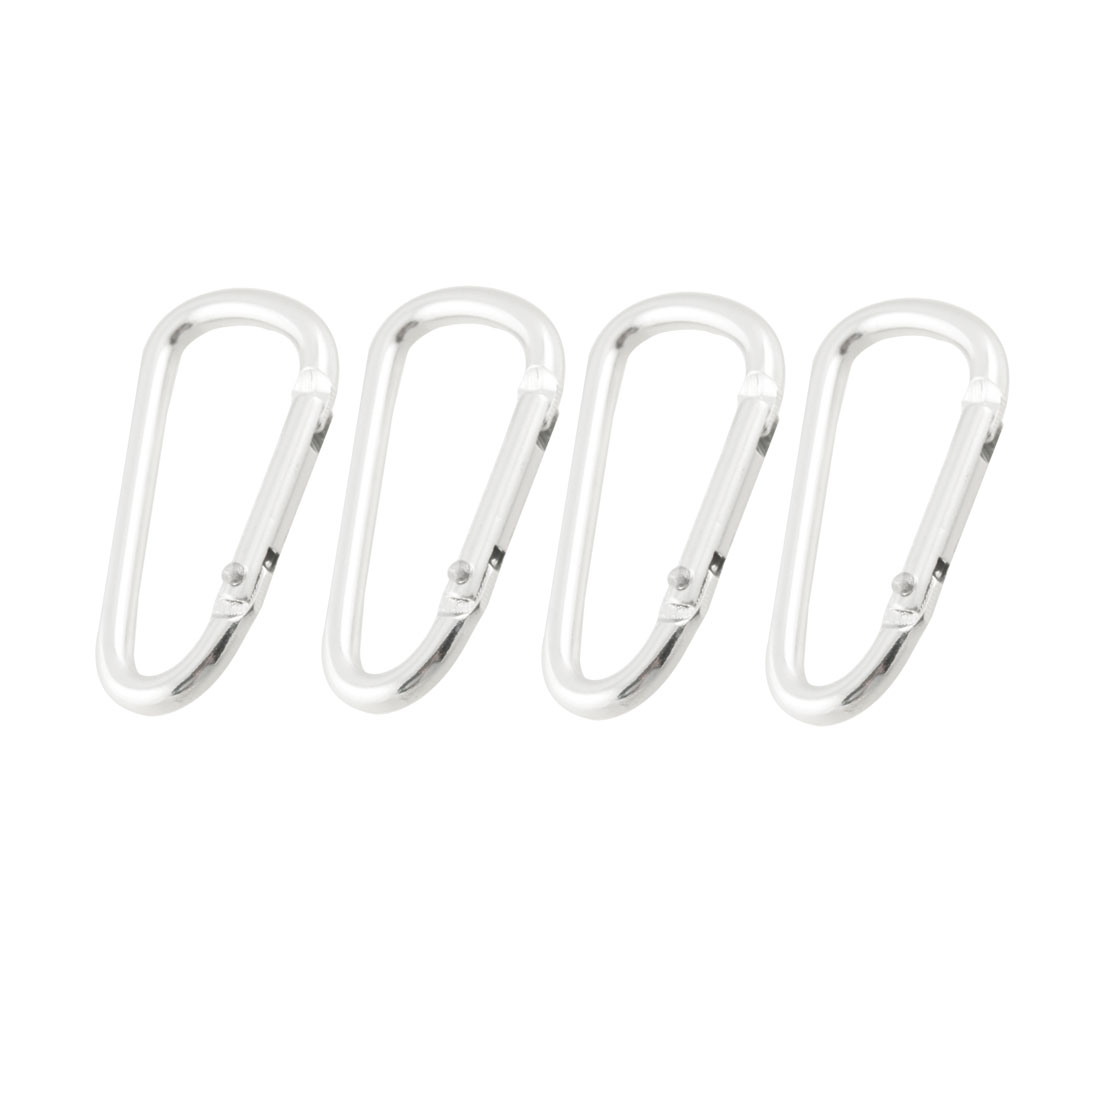 4 Pcs Silver Tone Spring Gate D Shape Aluminum Alloy Carabiners